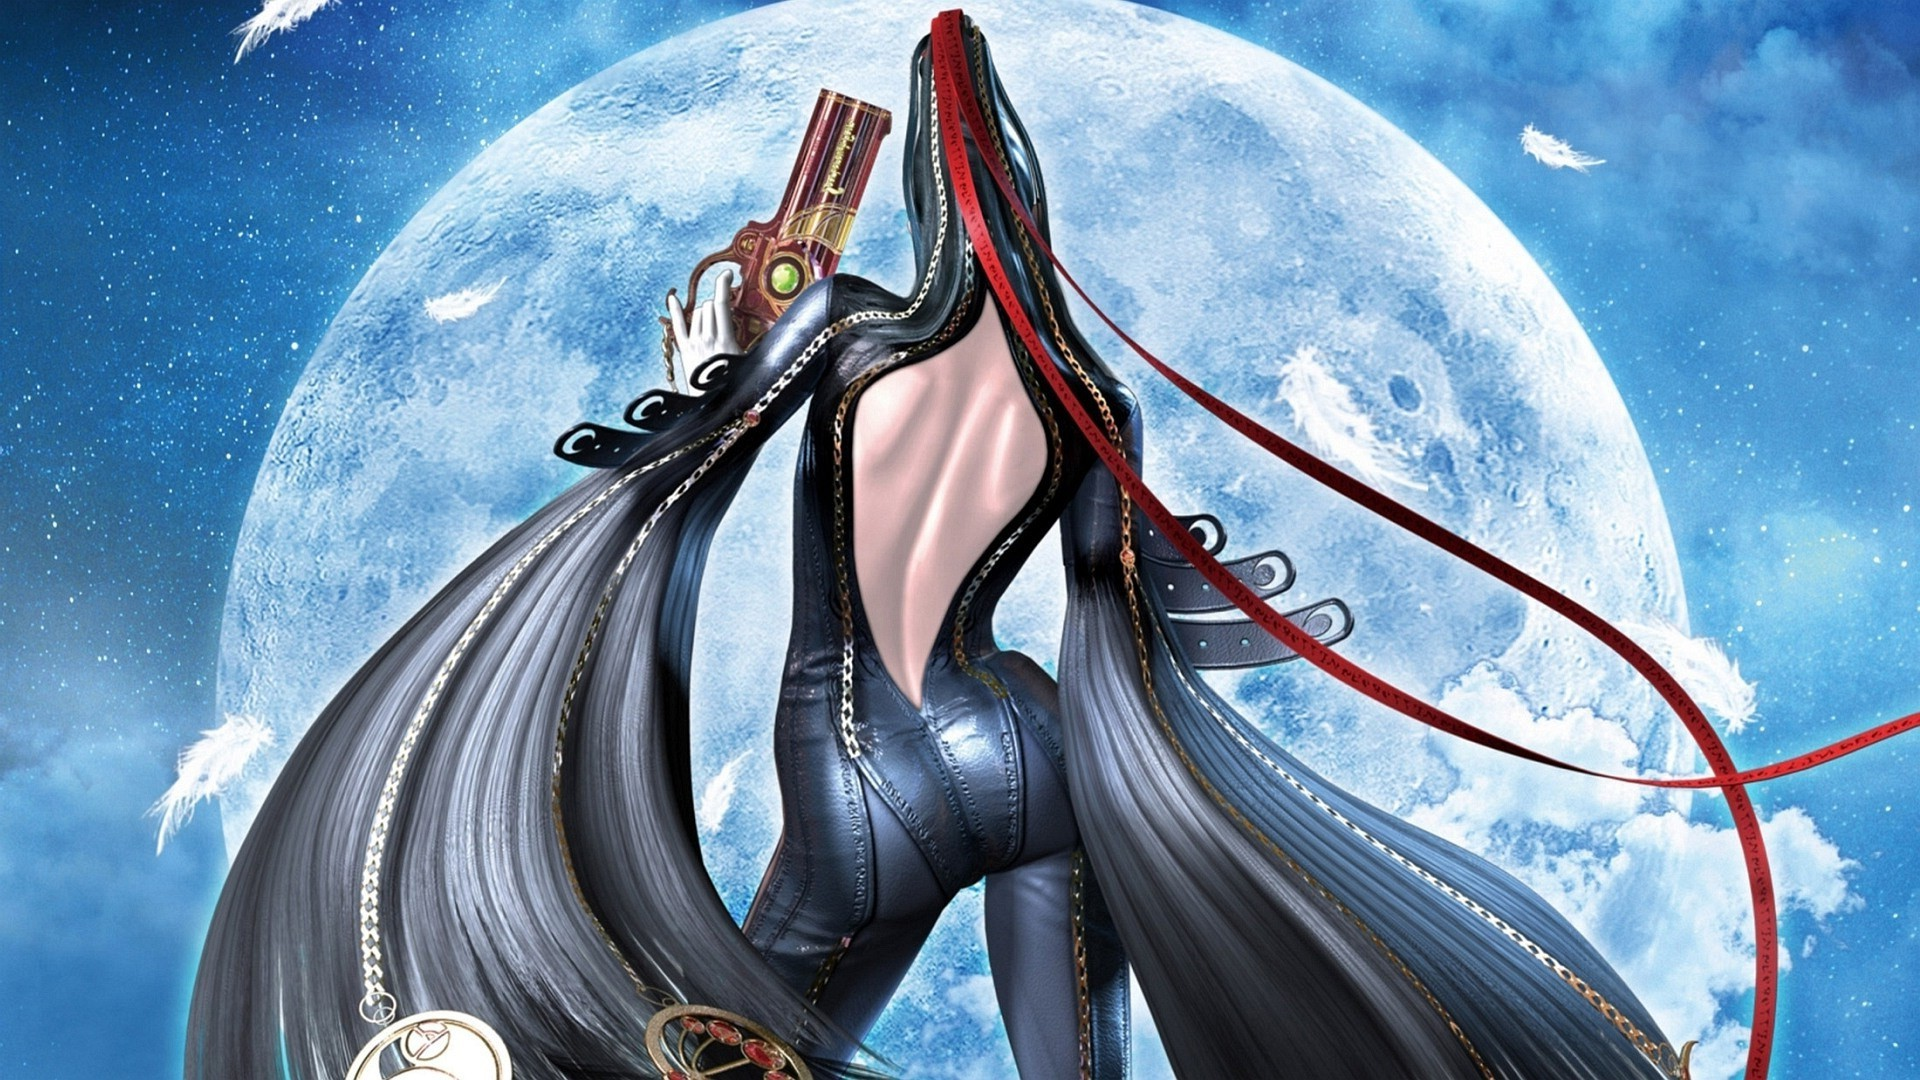 Ps4 Wallpaper Hd Is Platinumgames Teasing Bayonetta 3 Or Just Trolling